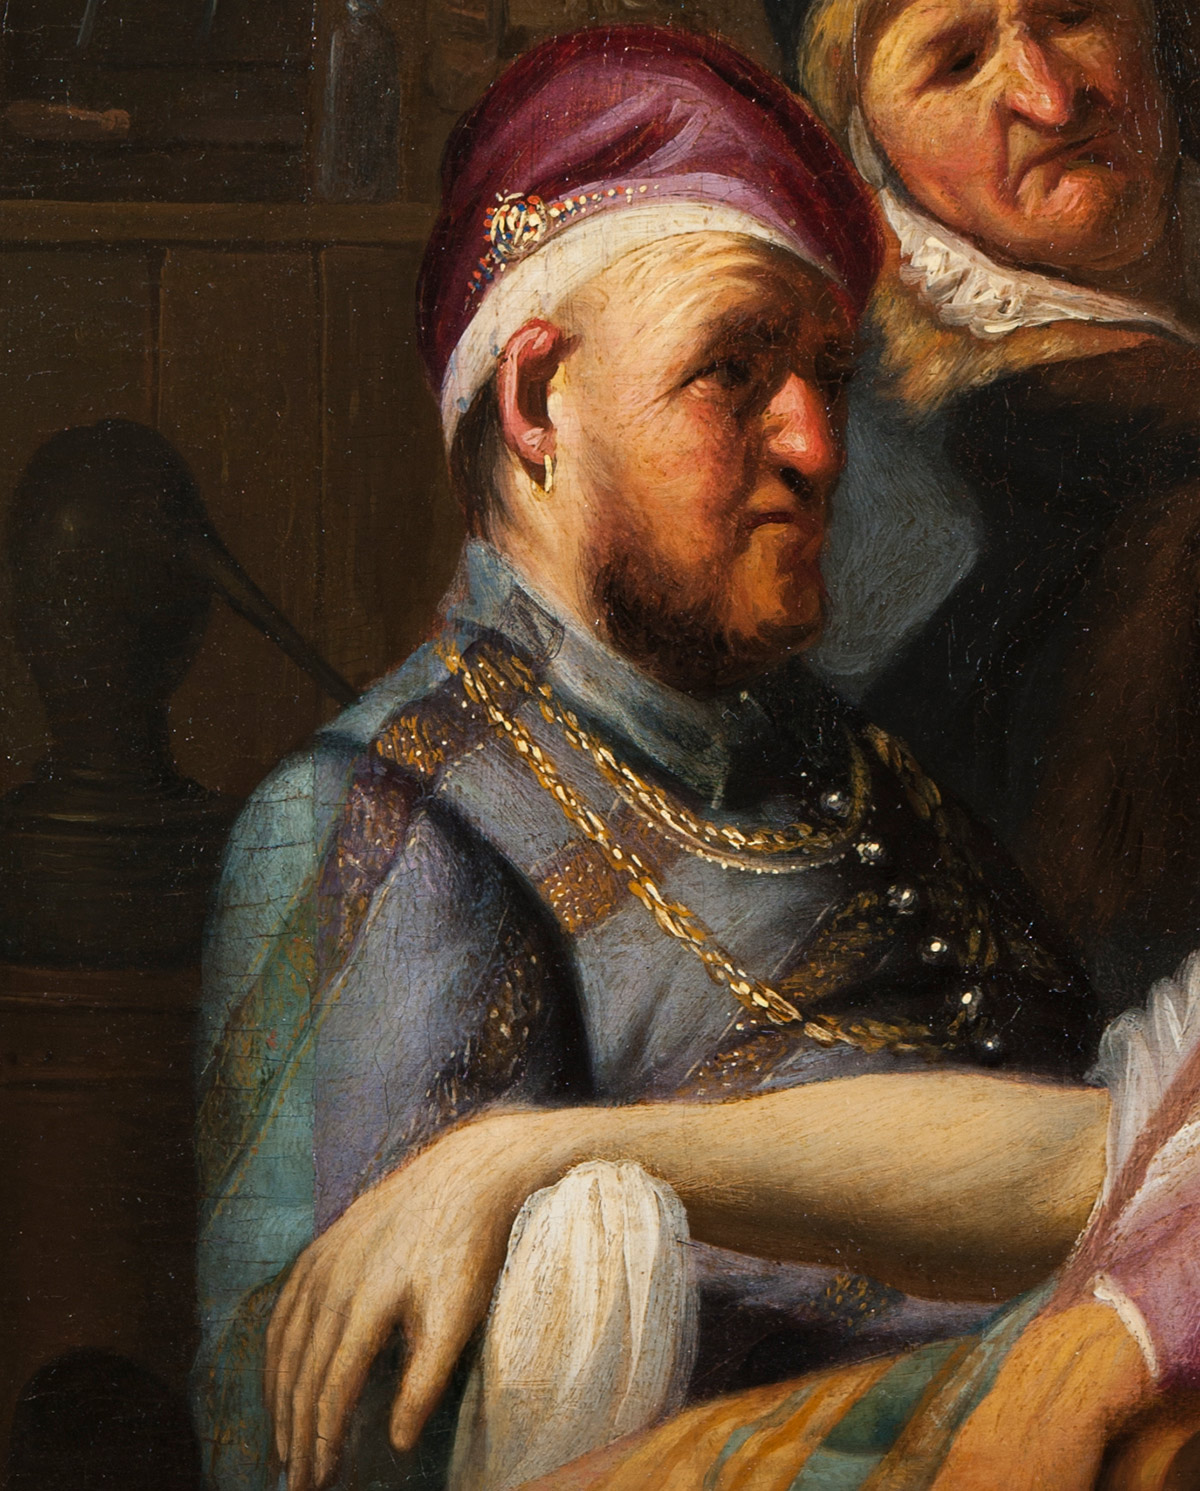 Detail of Rembrandt's Smell showing a figure's striped blue jacket